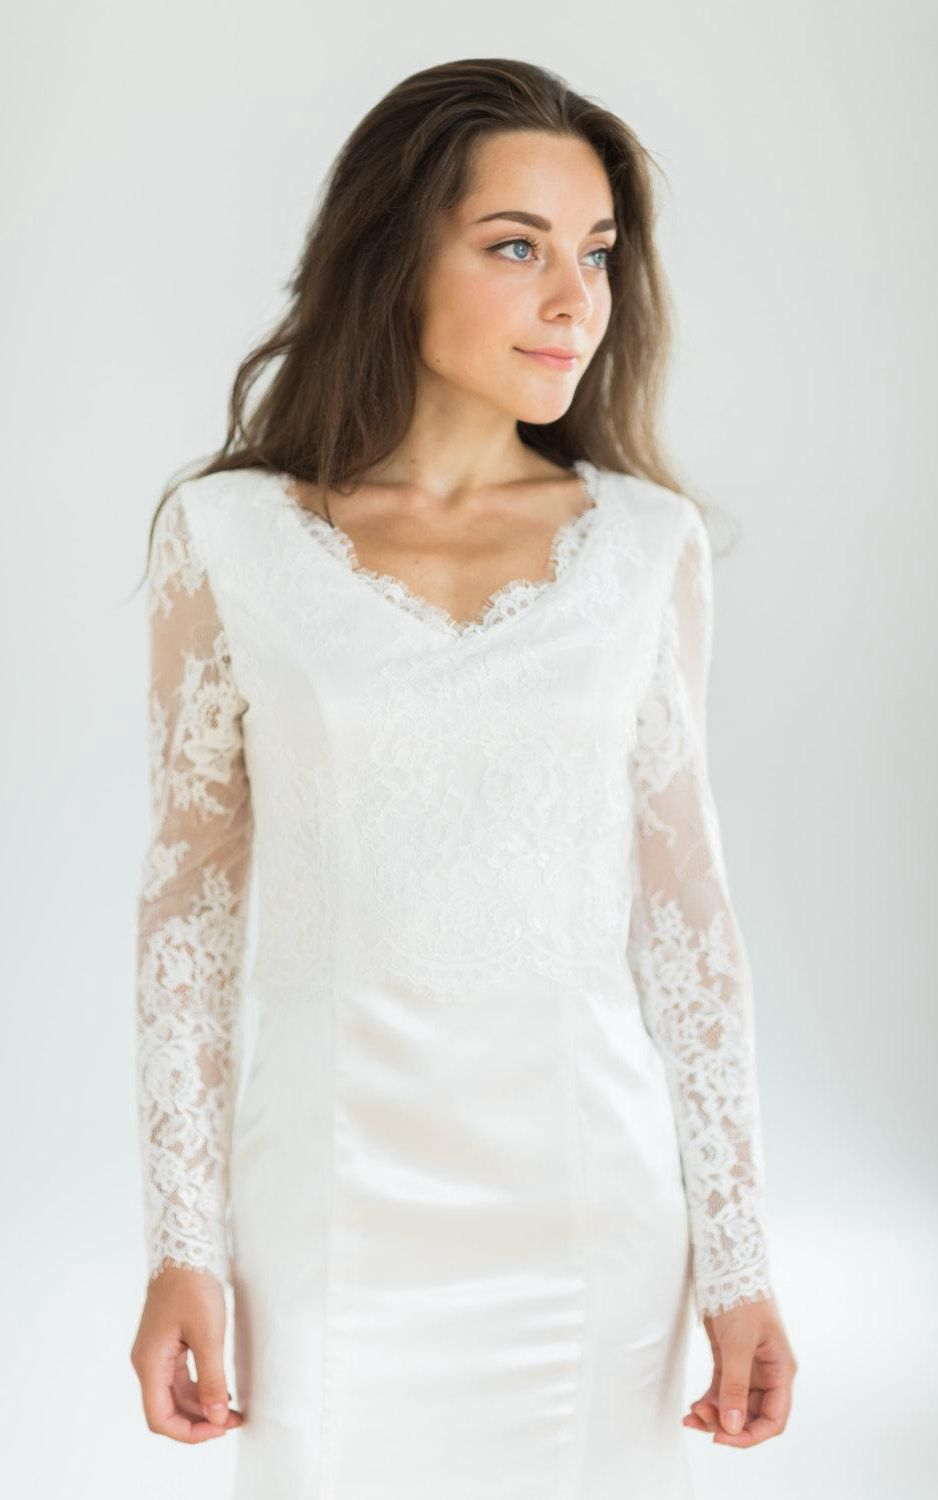 Long sleeve cocktail dress for wedding  White Vintage Style Mermaid Wedding With Long Lace Sleeves Dress